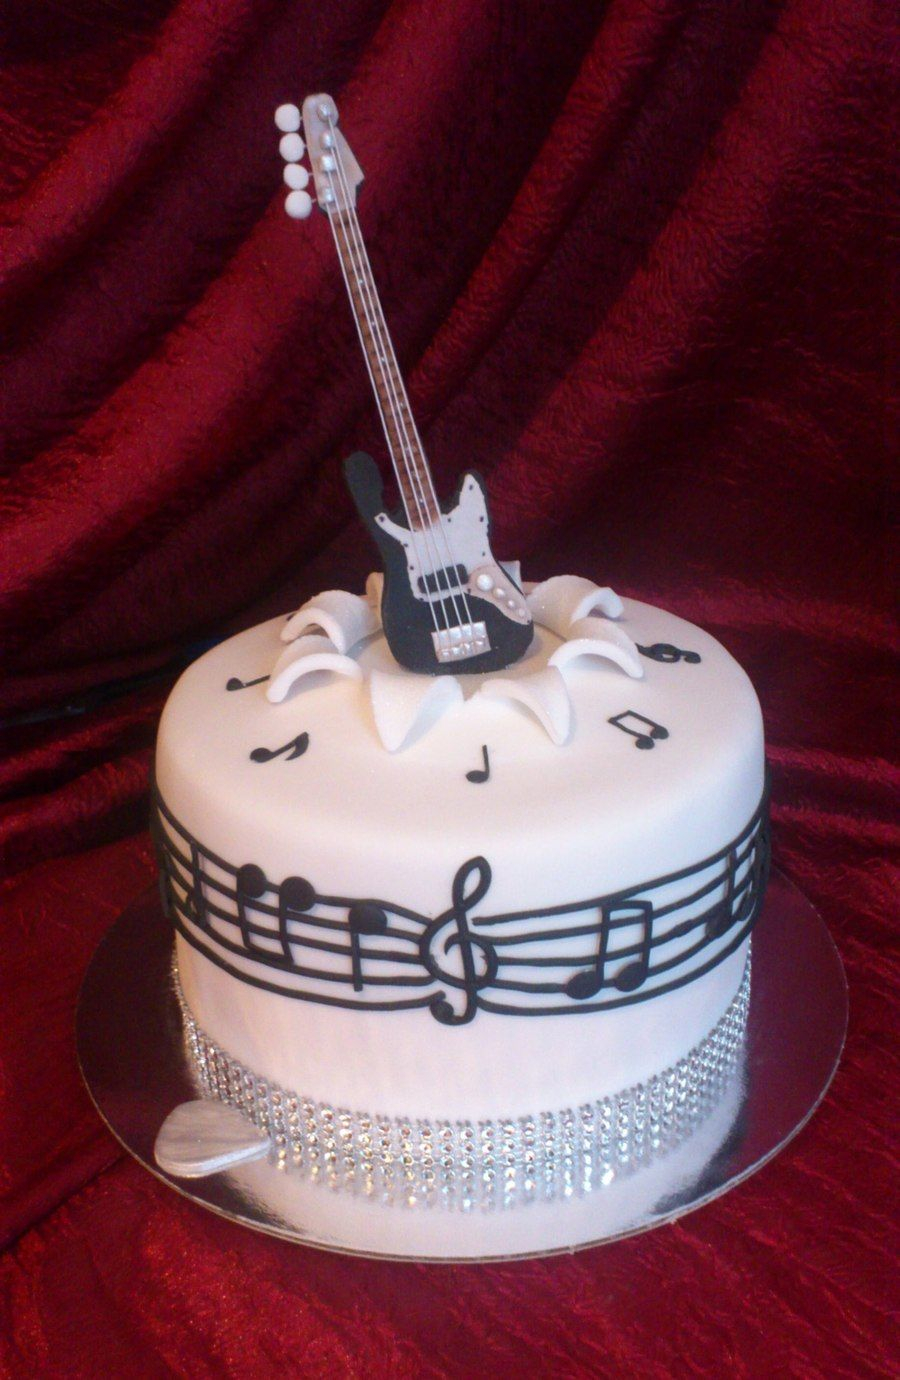 Guitar Birthday Cake Fender Decorated Guitar Cake Cake Guitar Birthday Cakes